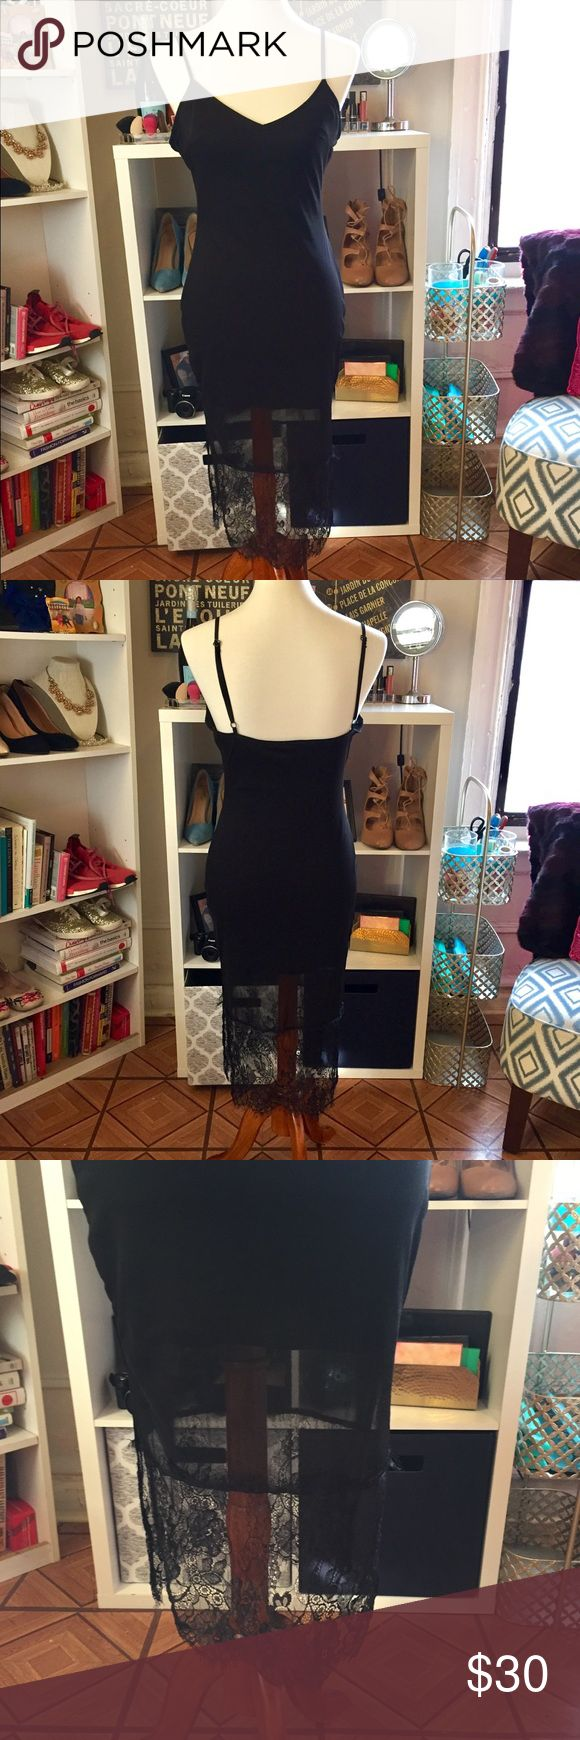 Black dress size 8 double pointed